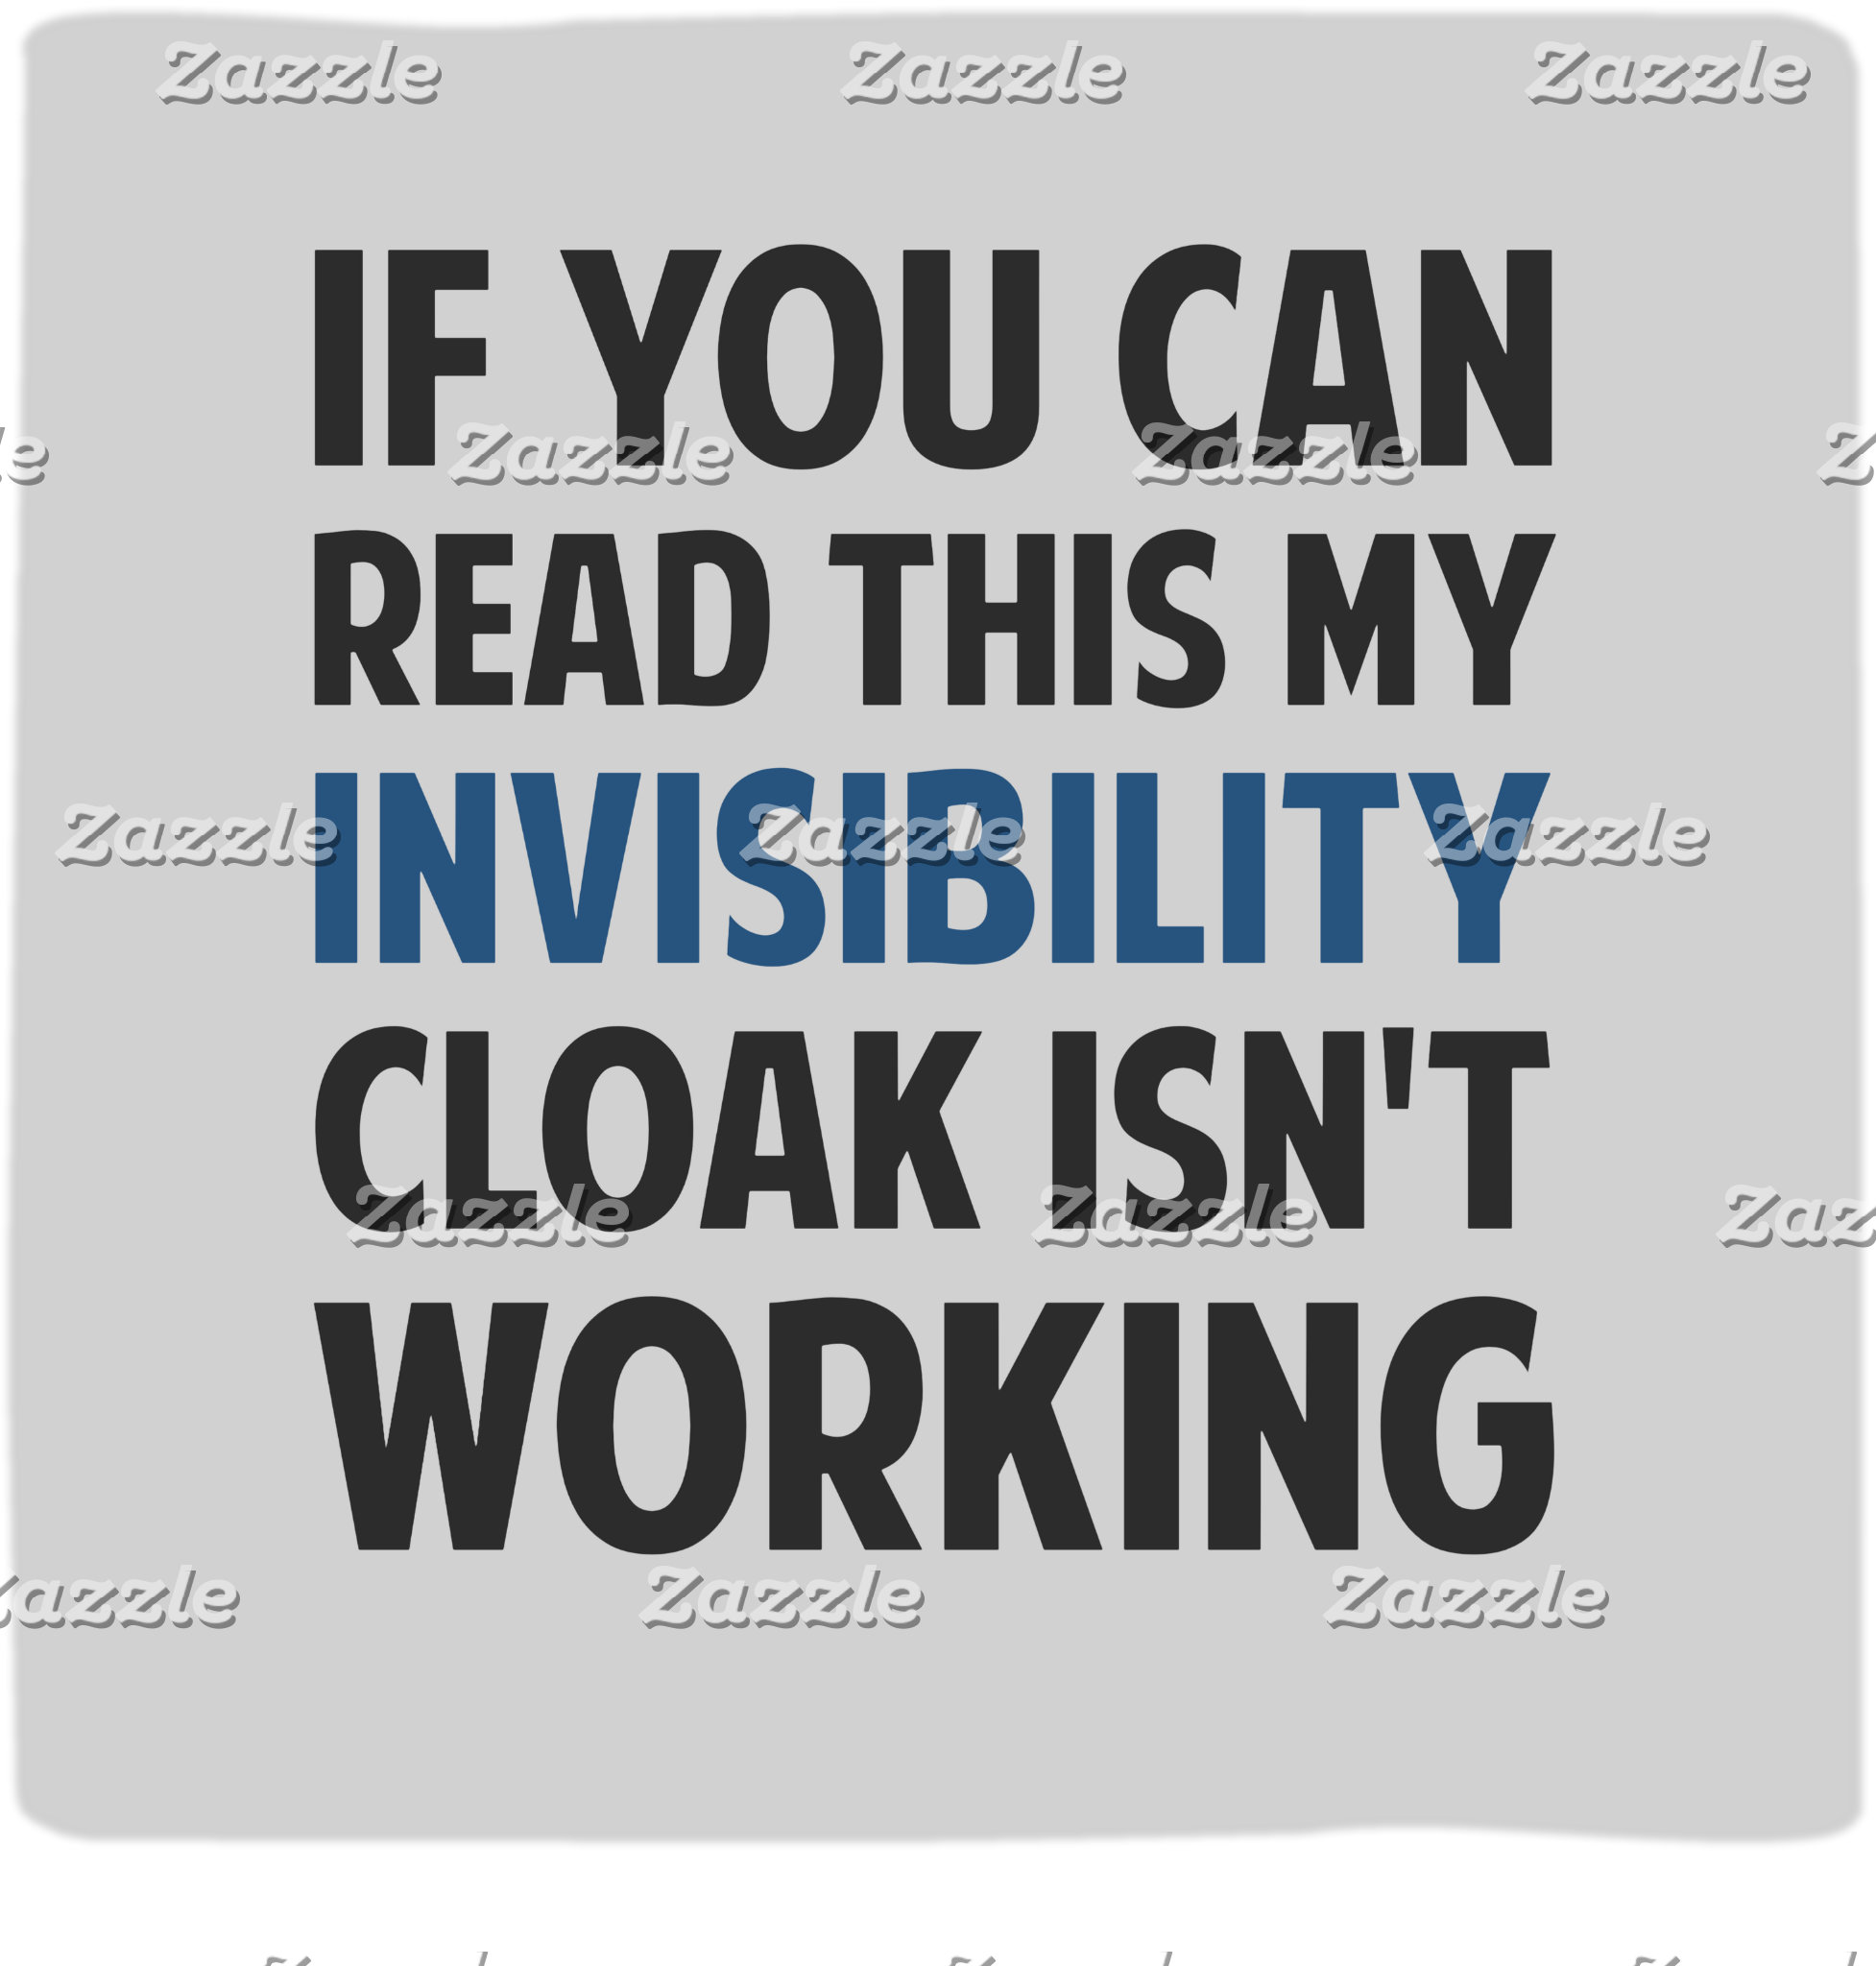 Invisibility Cloak Isn't Working